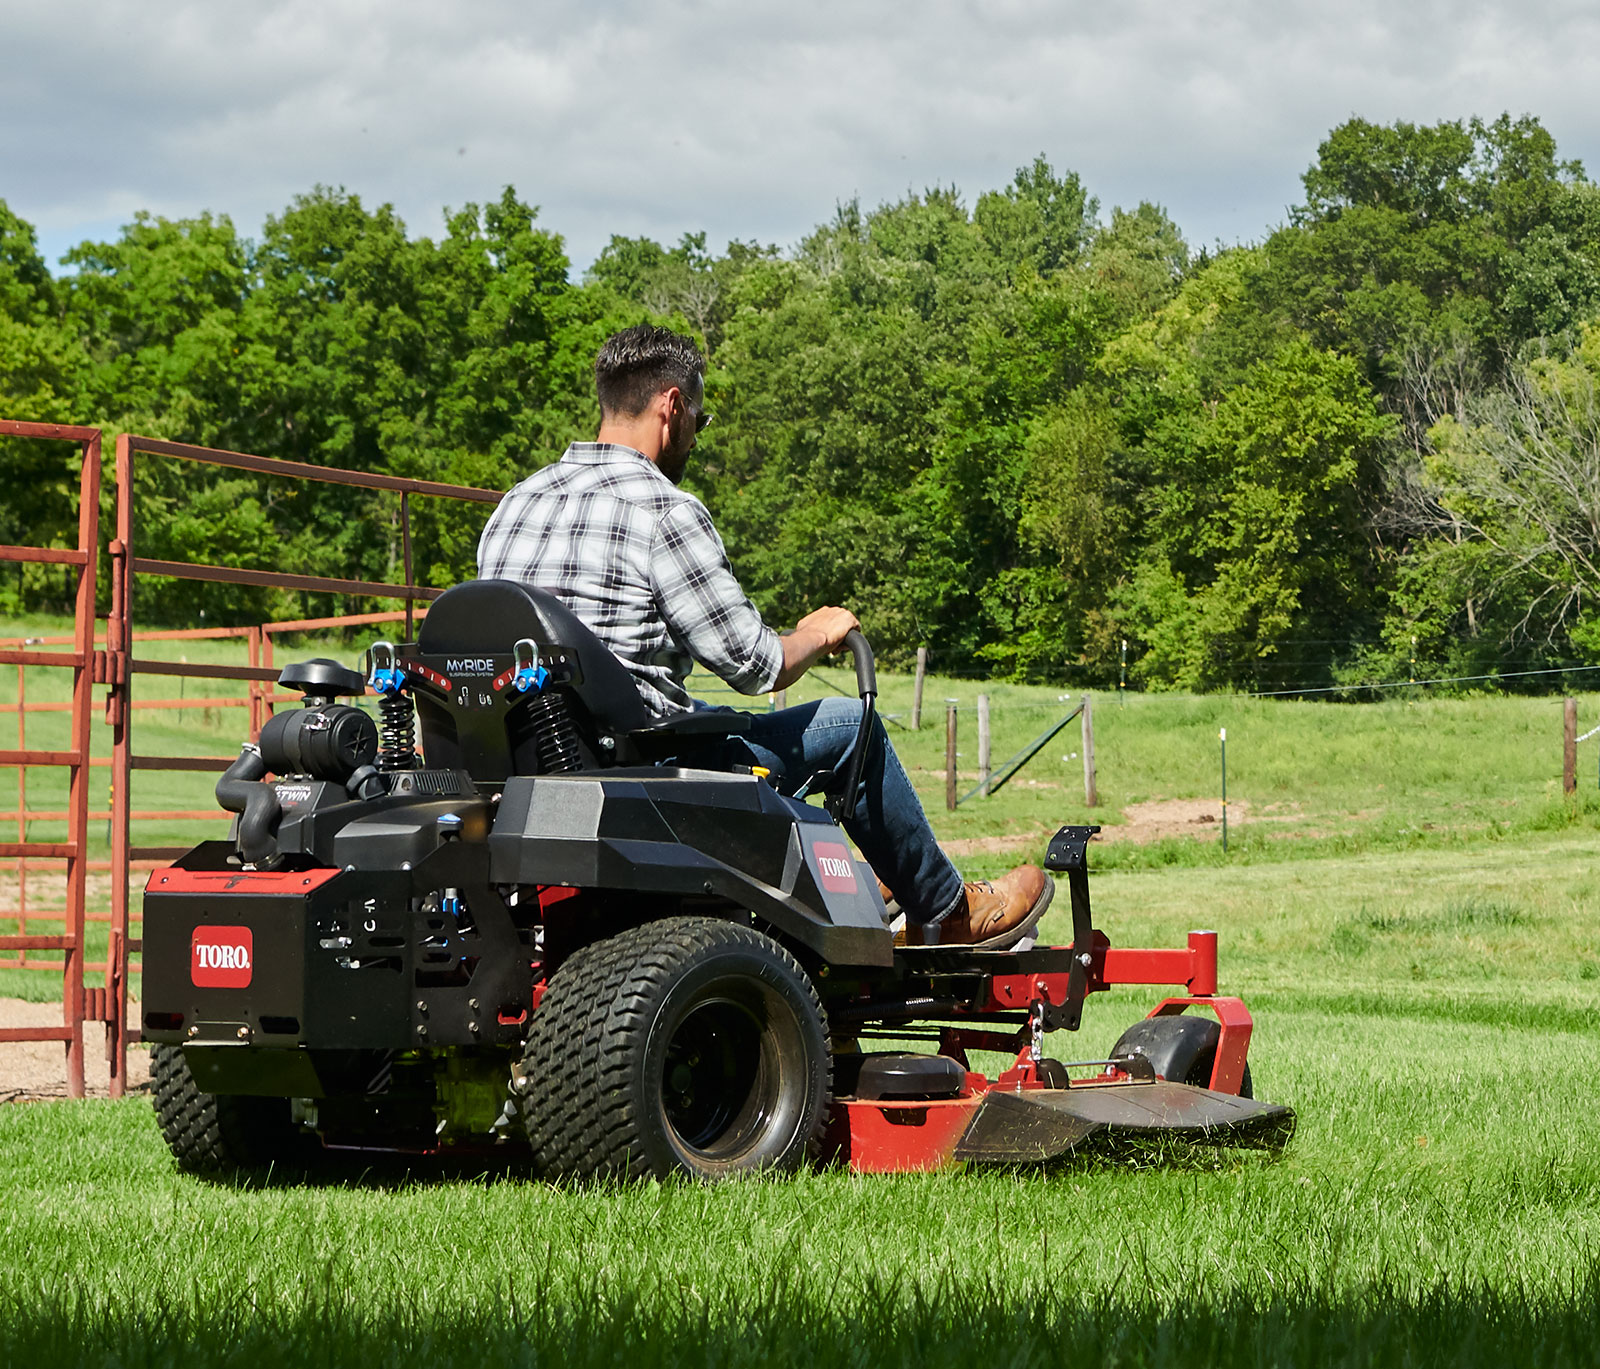 Try the Toro Myride zero turn mower experience